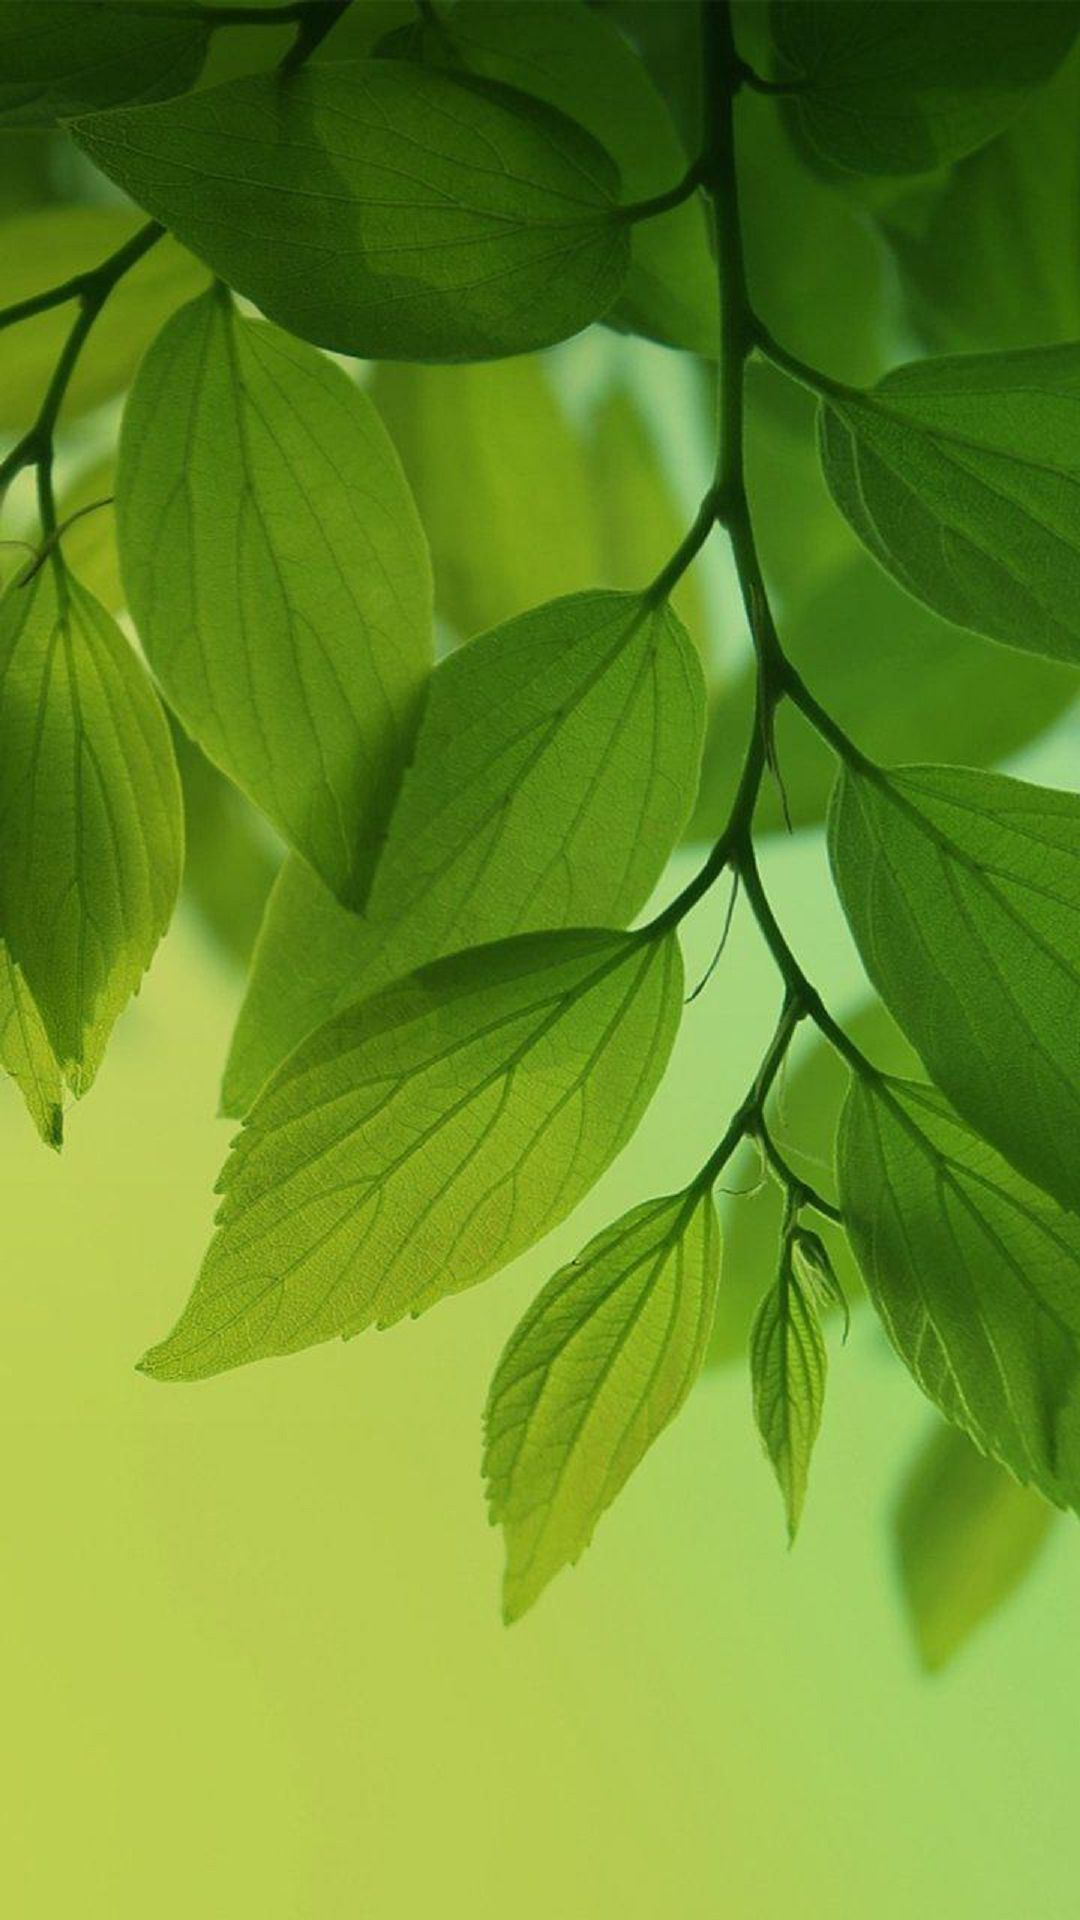 get free leaf live wallpaper on your screen